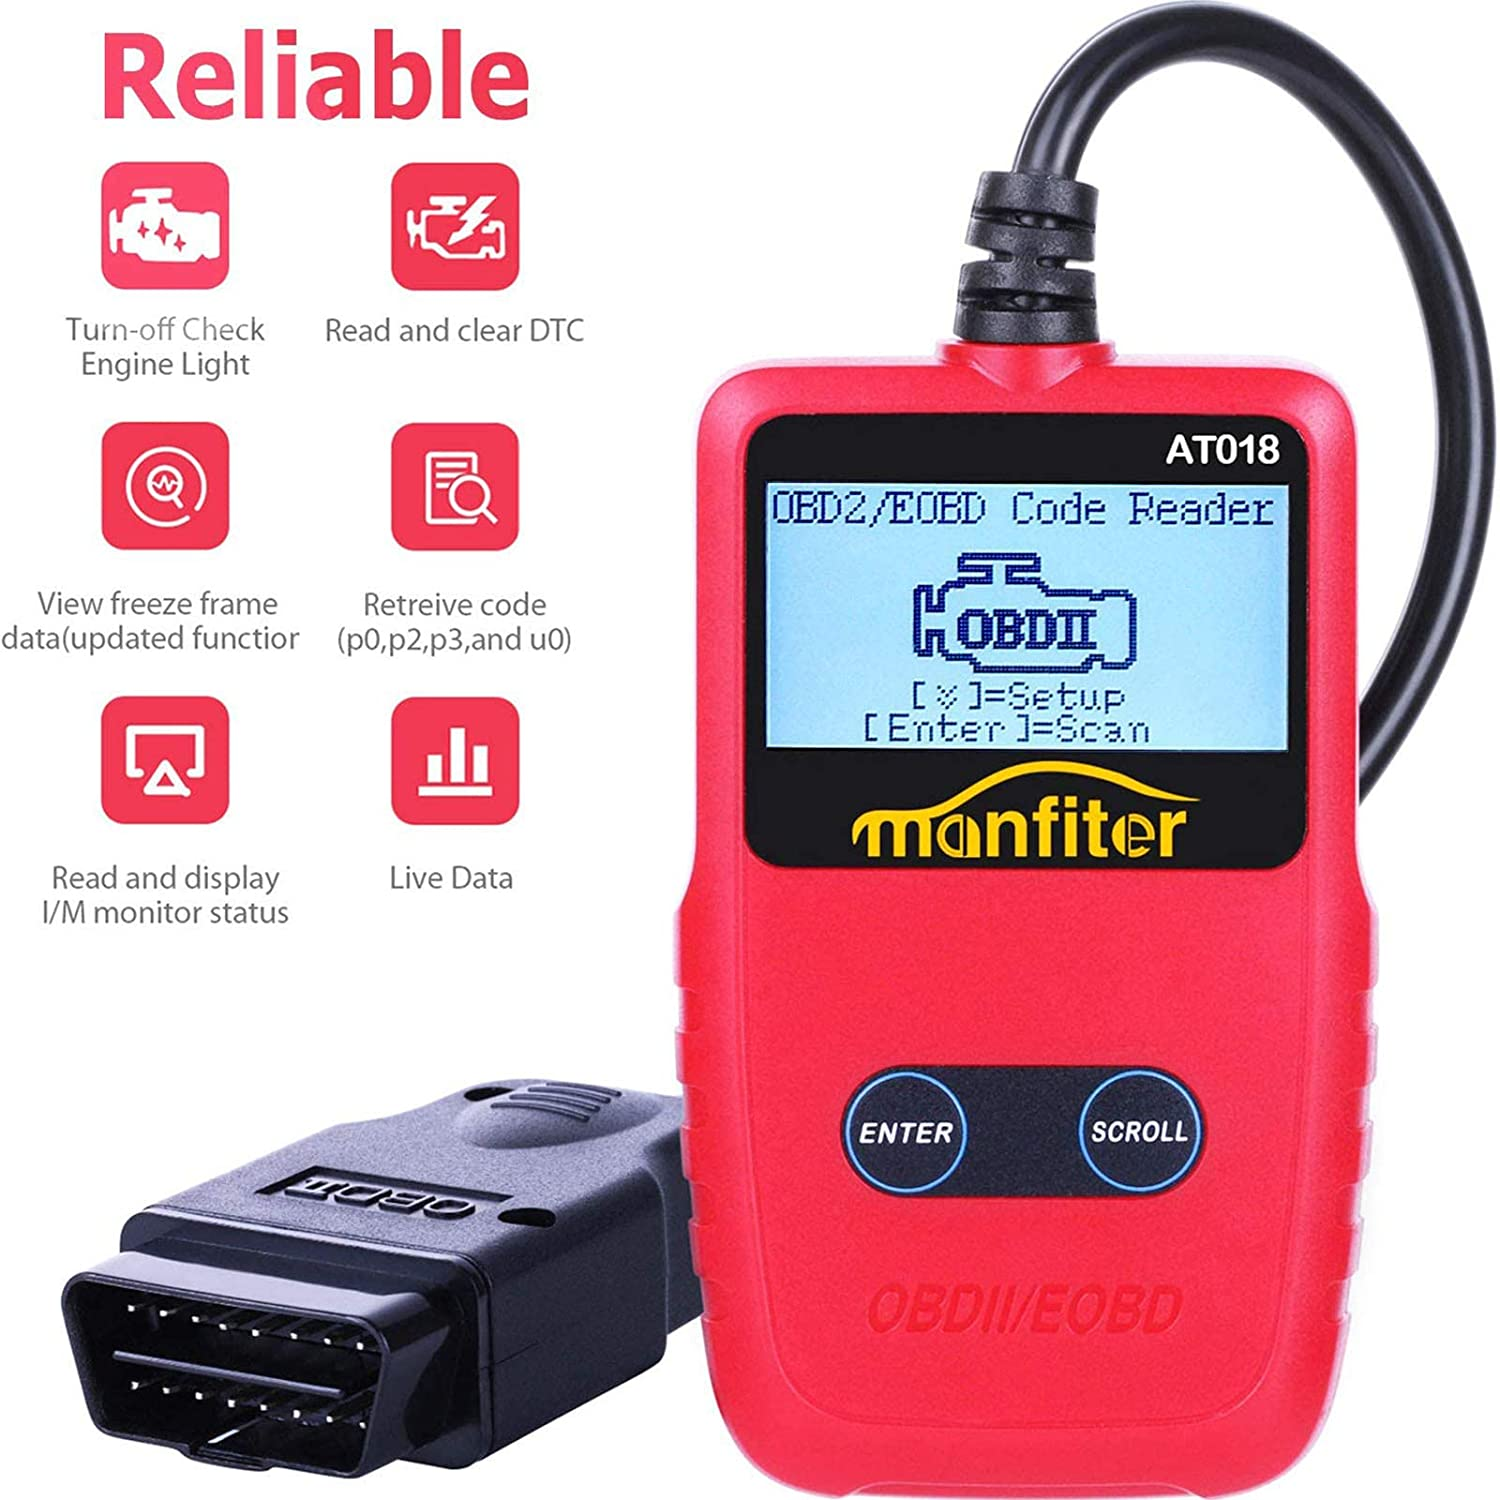 OBD2 Scanner for $12.48 Shipped! (Reg.Price $24.96)